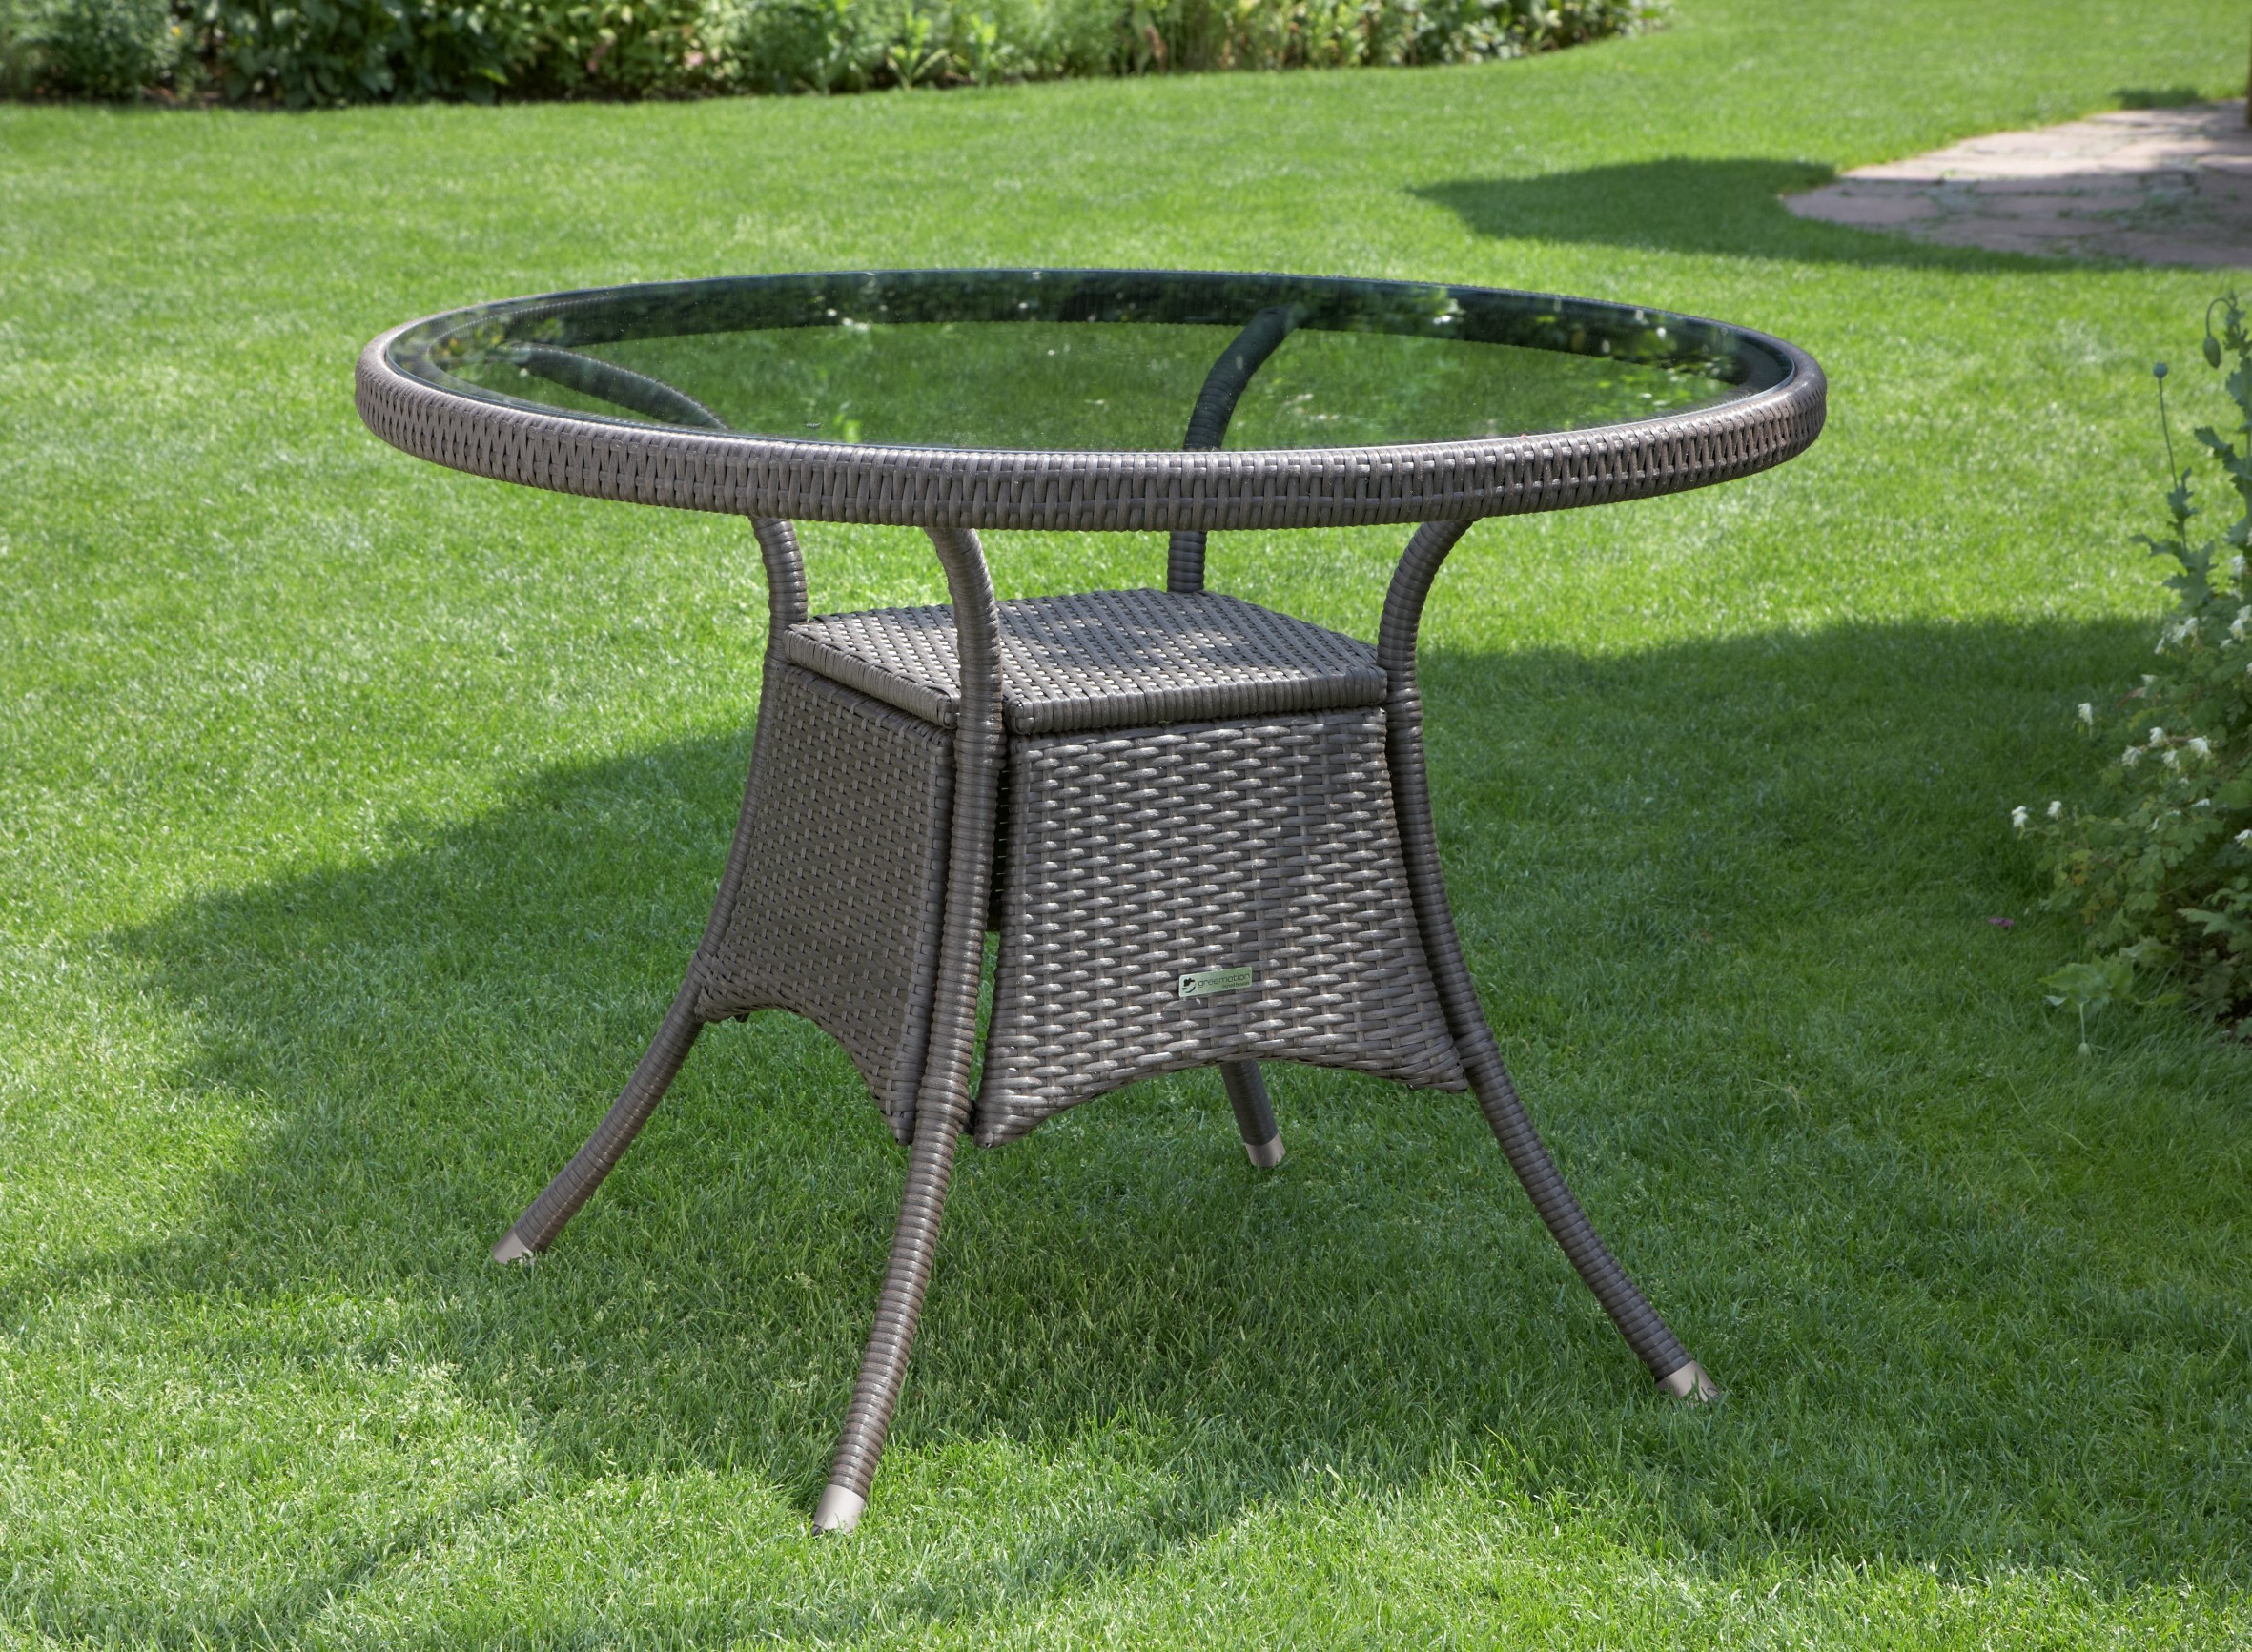 garten rattan rattantisch glas tisch gartentisch glastisch 100 cm braun neu ebay. Black Bedroom Furniture Sets. Home Design Ideas